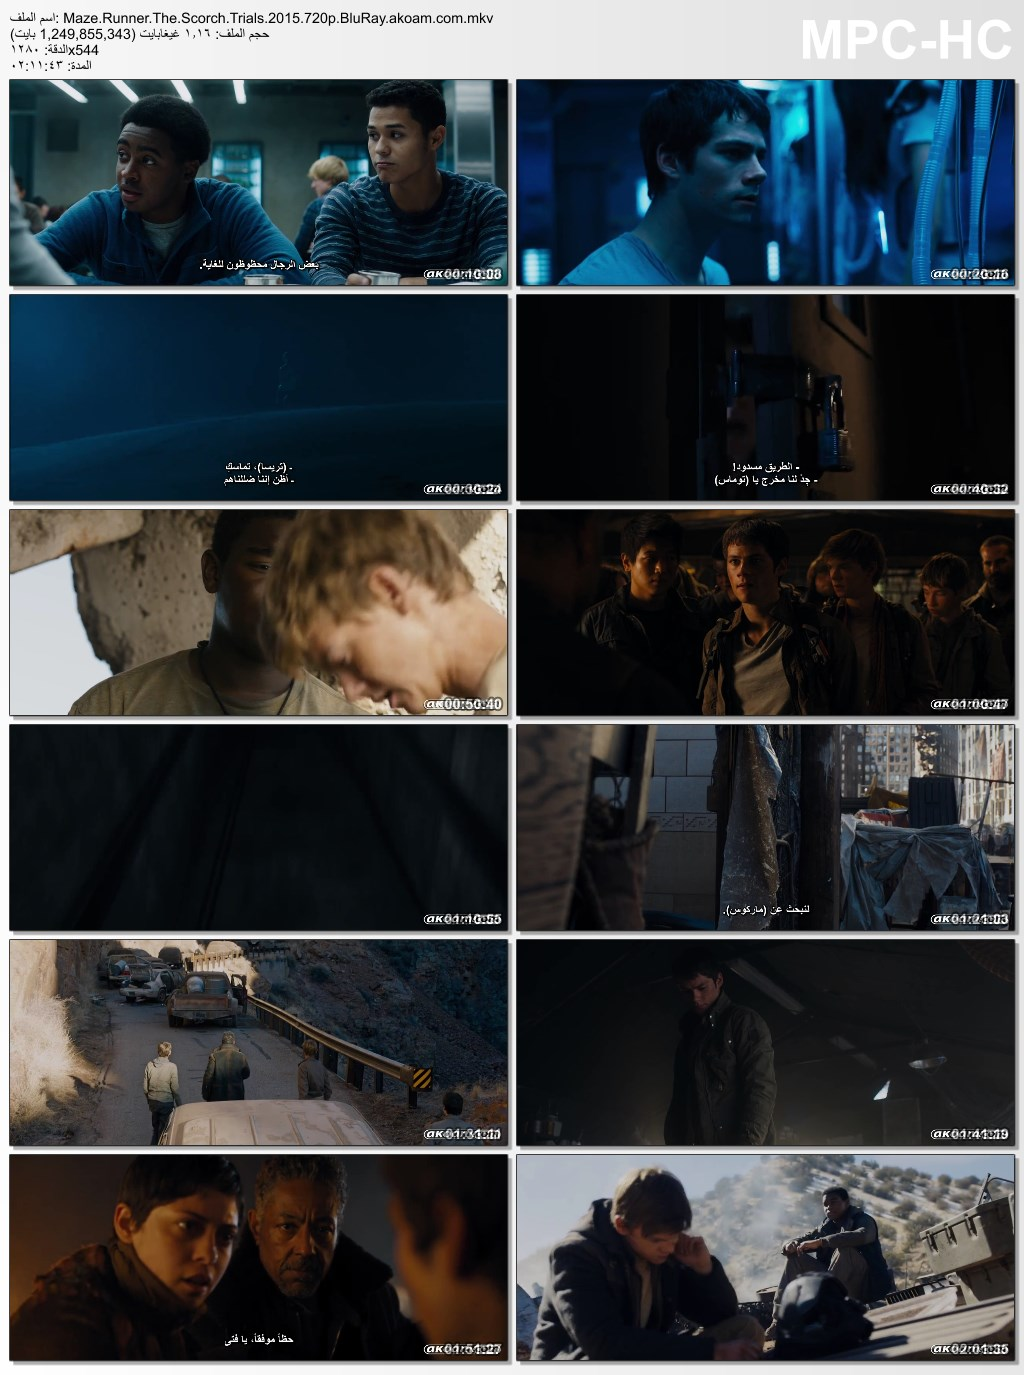 Maze Runner The Scorch Trials,Maze Runner The Scorch Trials 2015,الاكشن,الخيال العلمي,الاثارة